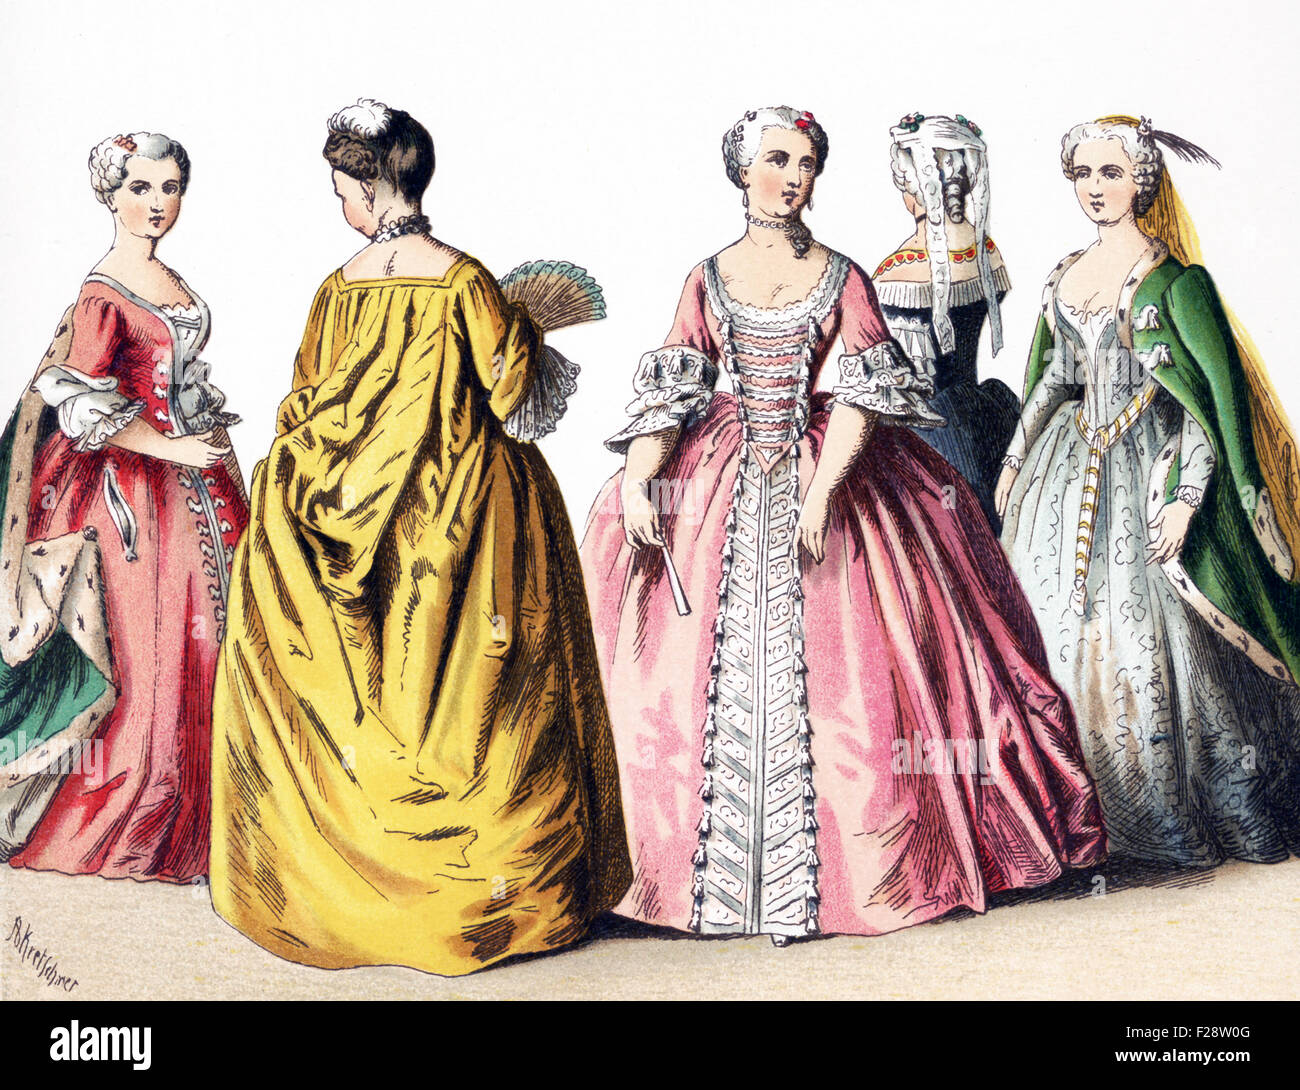 The figures illustrated here represent French ladies of rank—upper class women—between 1700 and 1750. The illustration - Stock Image